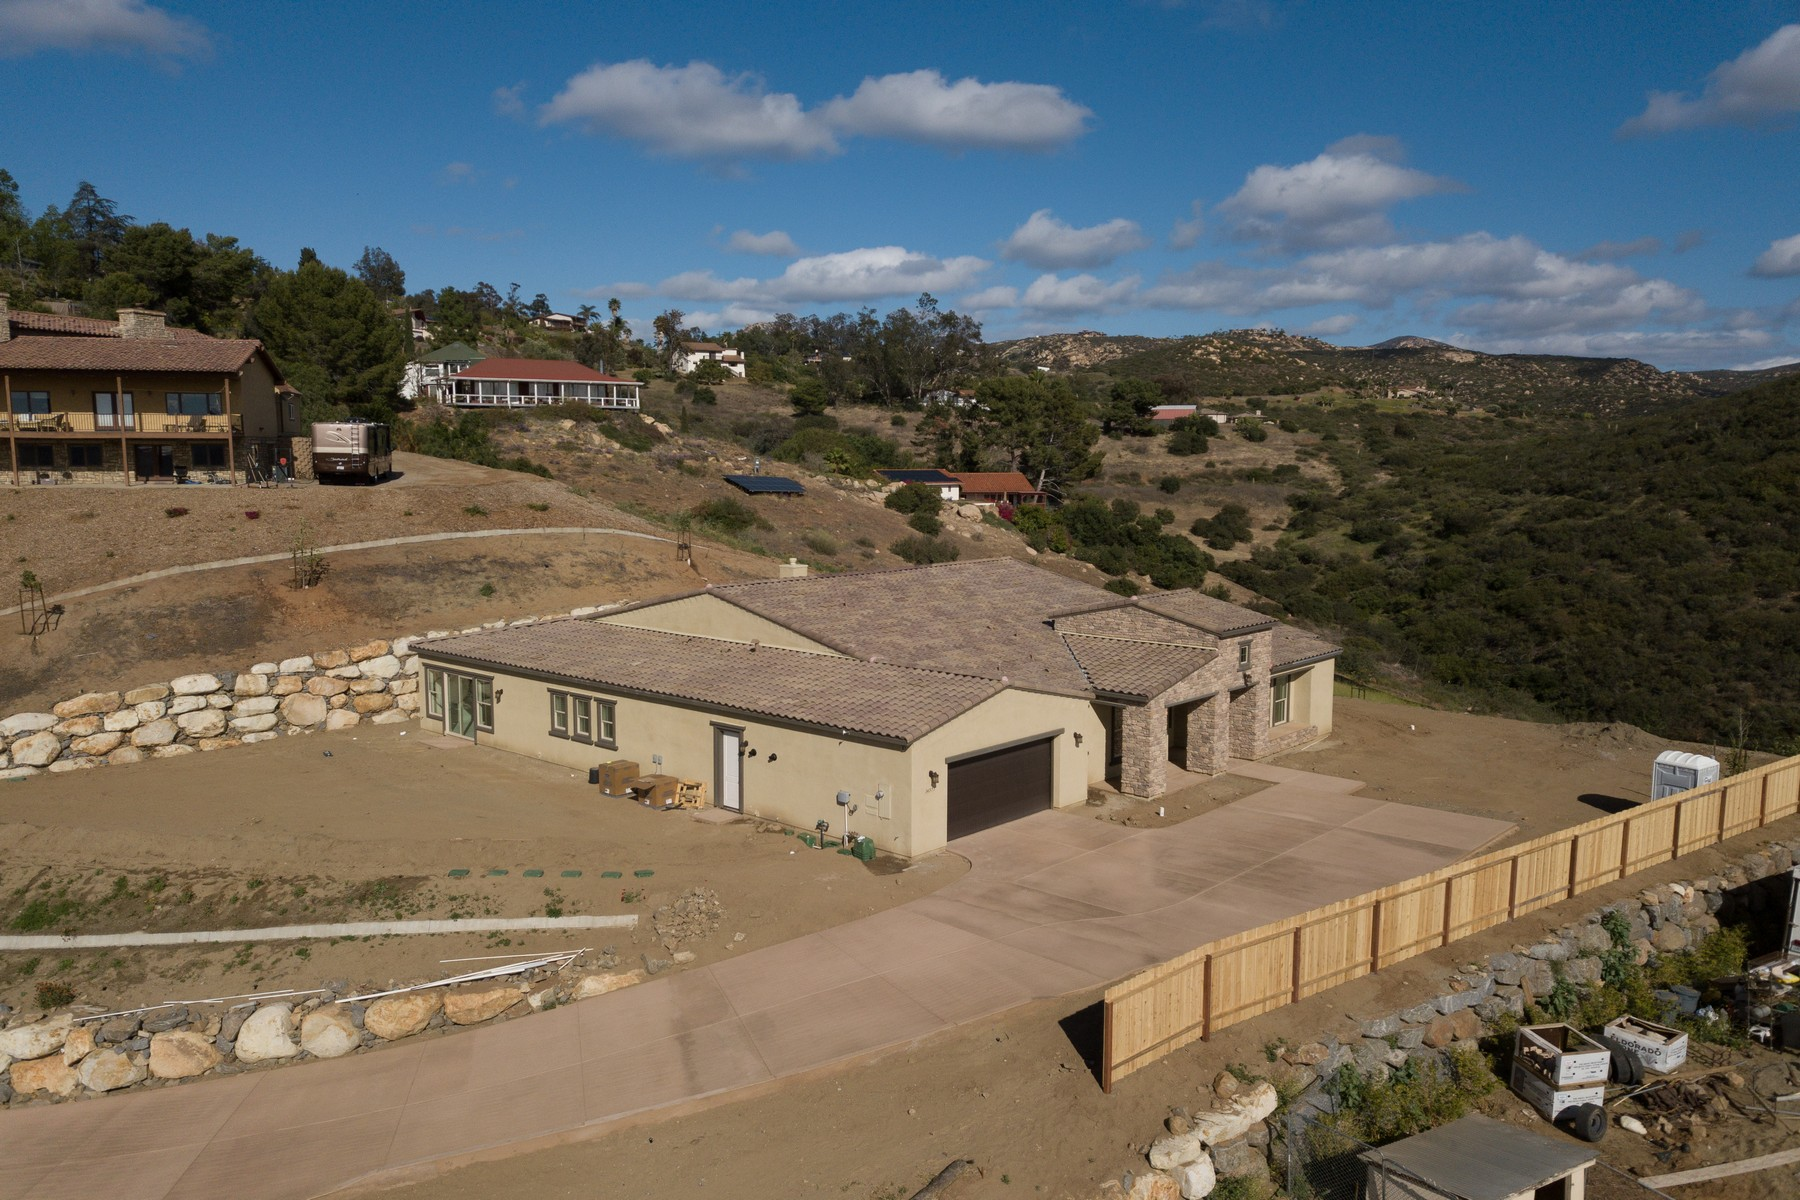 Single Family Home for Active at Highcrest Court Phase 2 Lot 2 14577 Highcrest Ct Poway, California 92064 United States